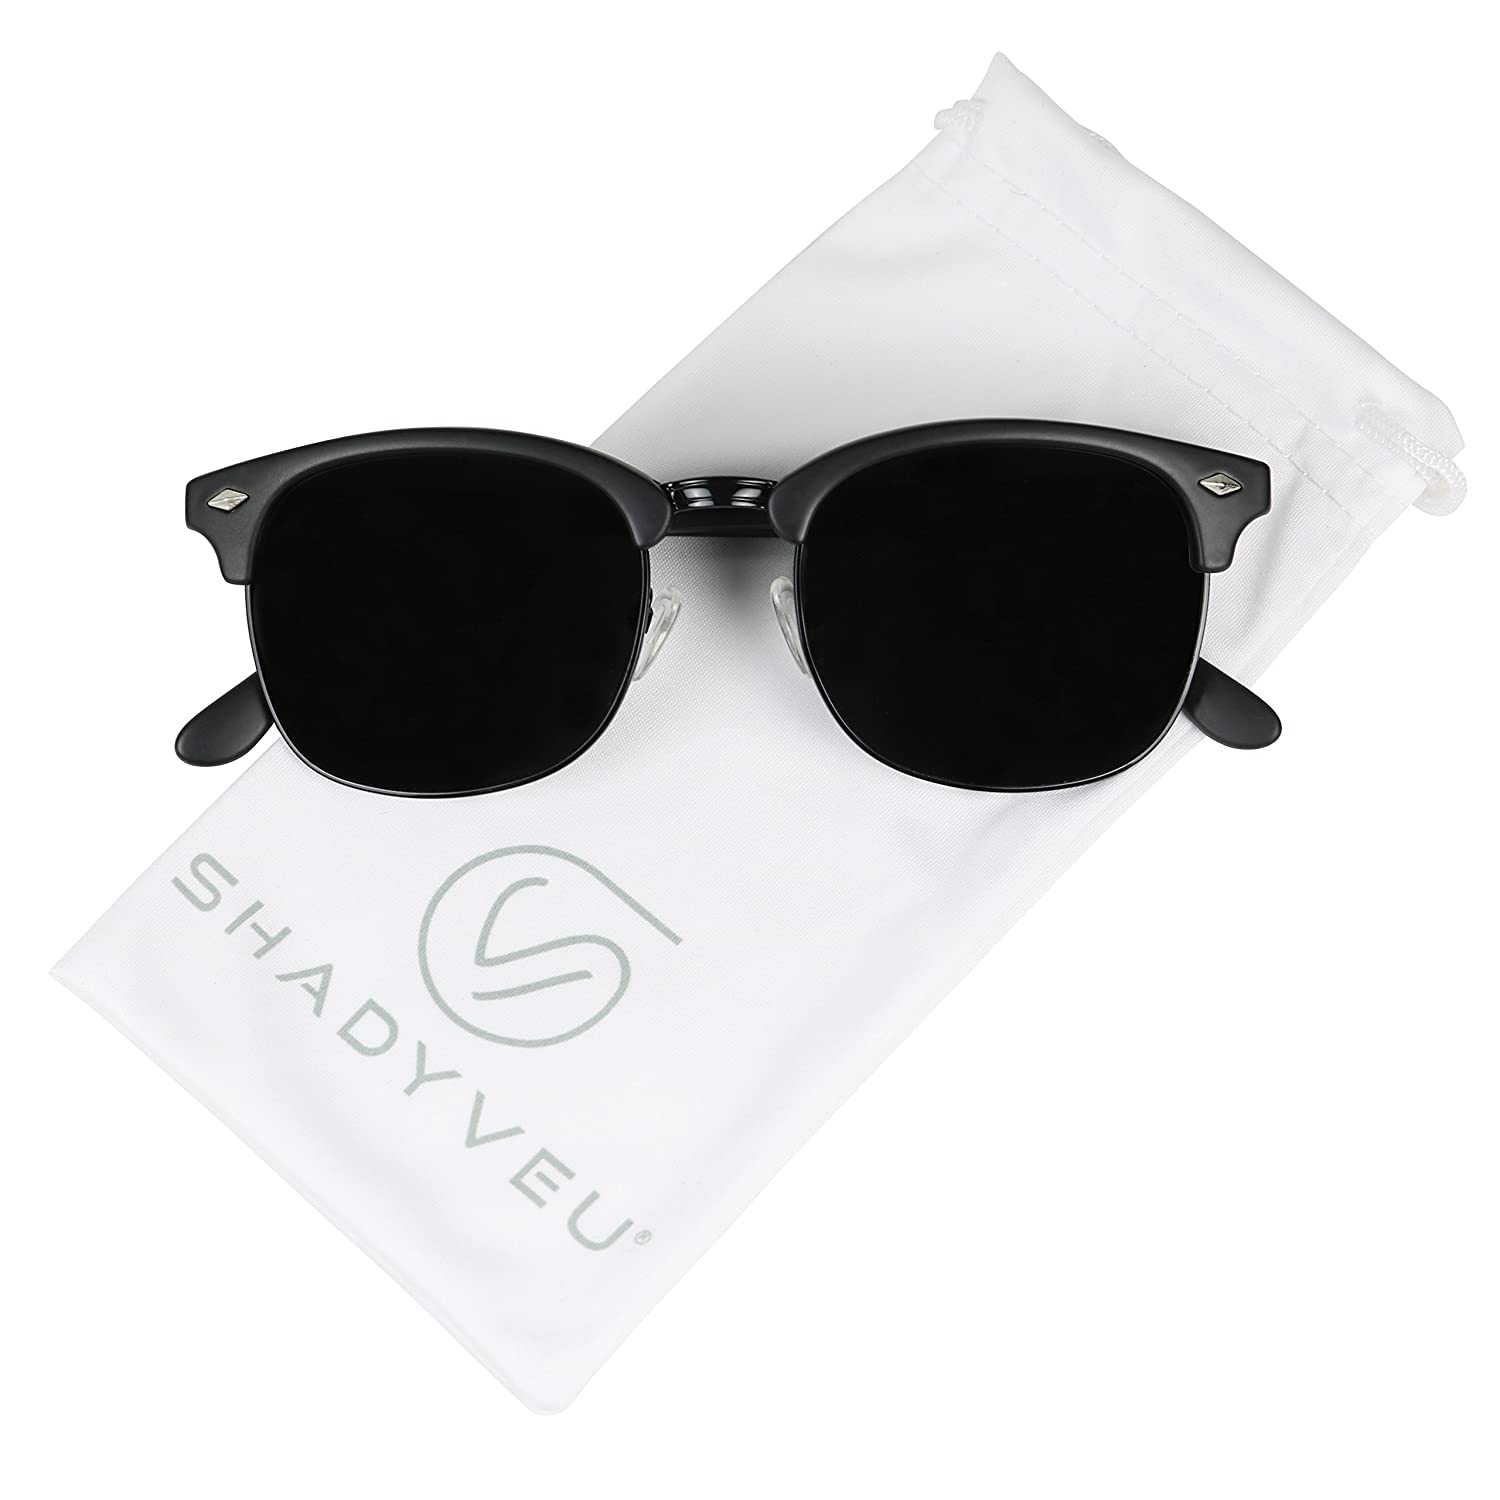 96ce0c4084 Amazon.com  ShadyVEU - Exclusive Super Dark Retro 80 s Semi Half Rimless  Round Classic Sunglasses (ALL BLACK